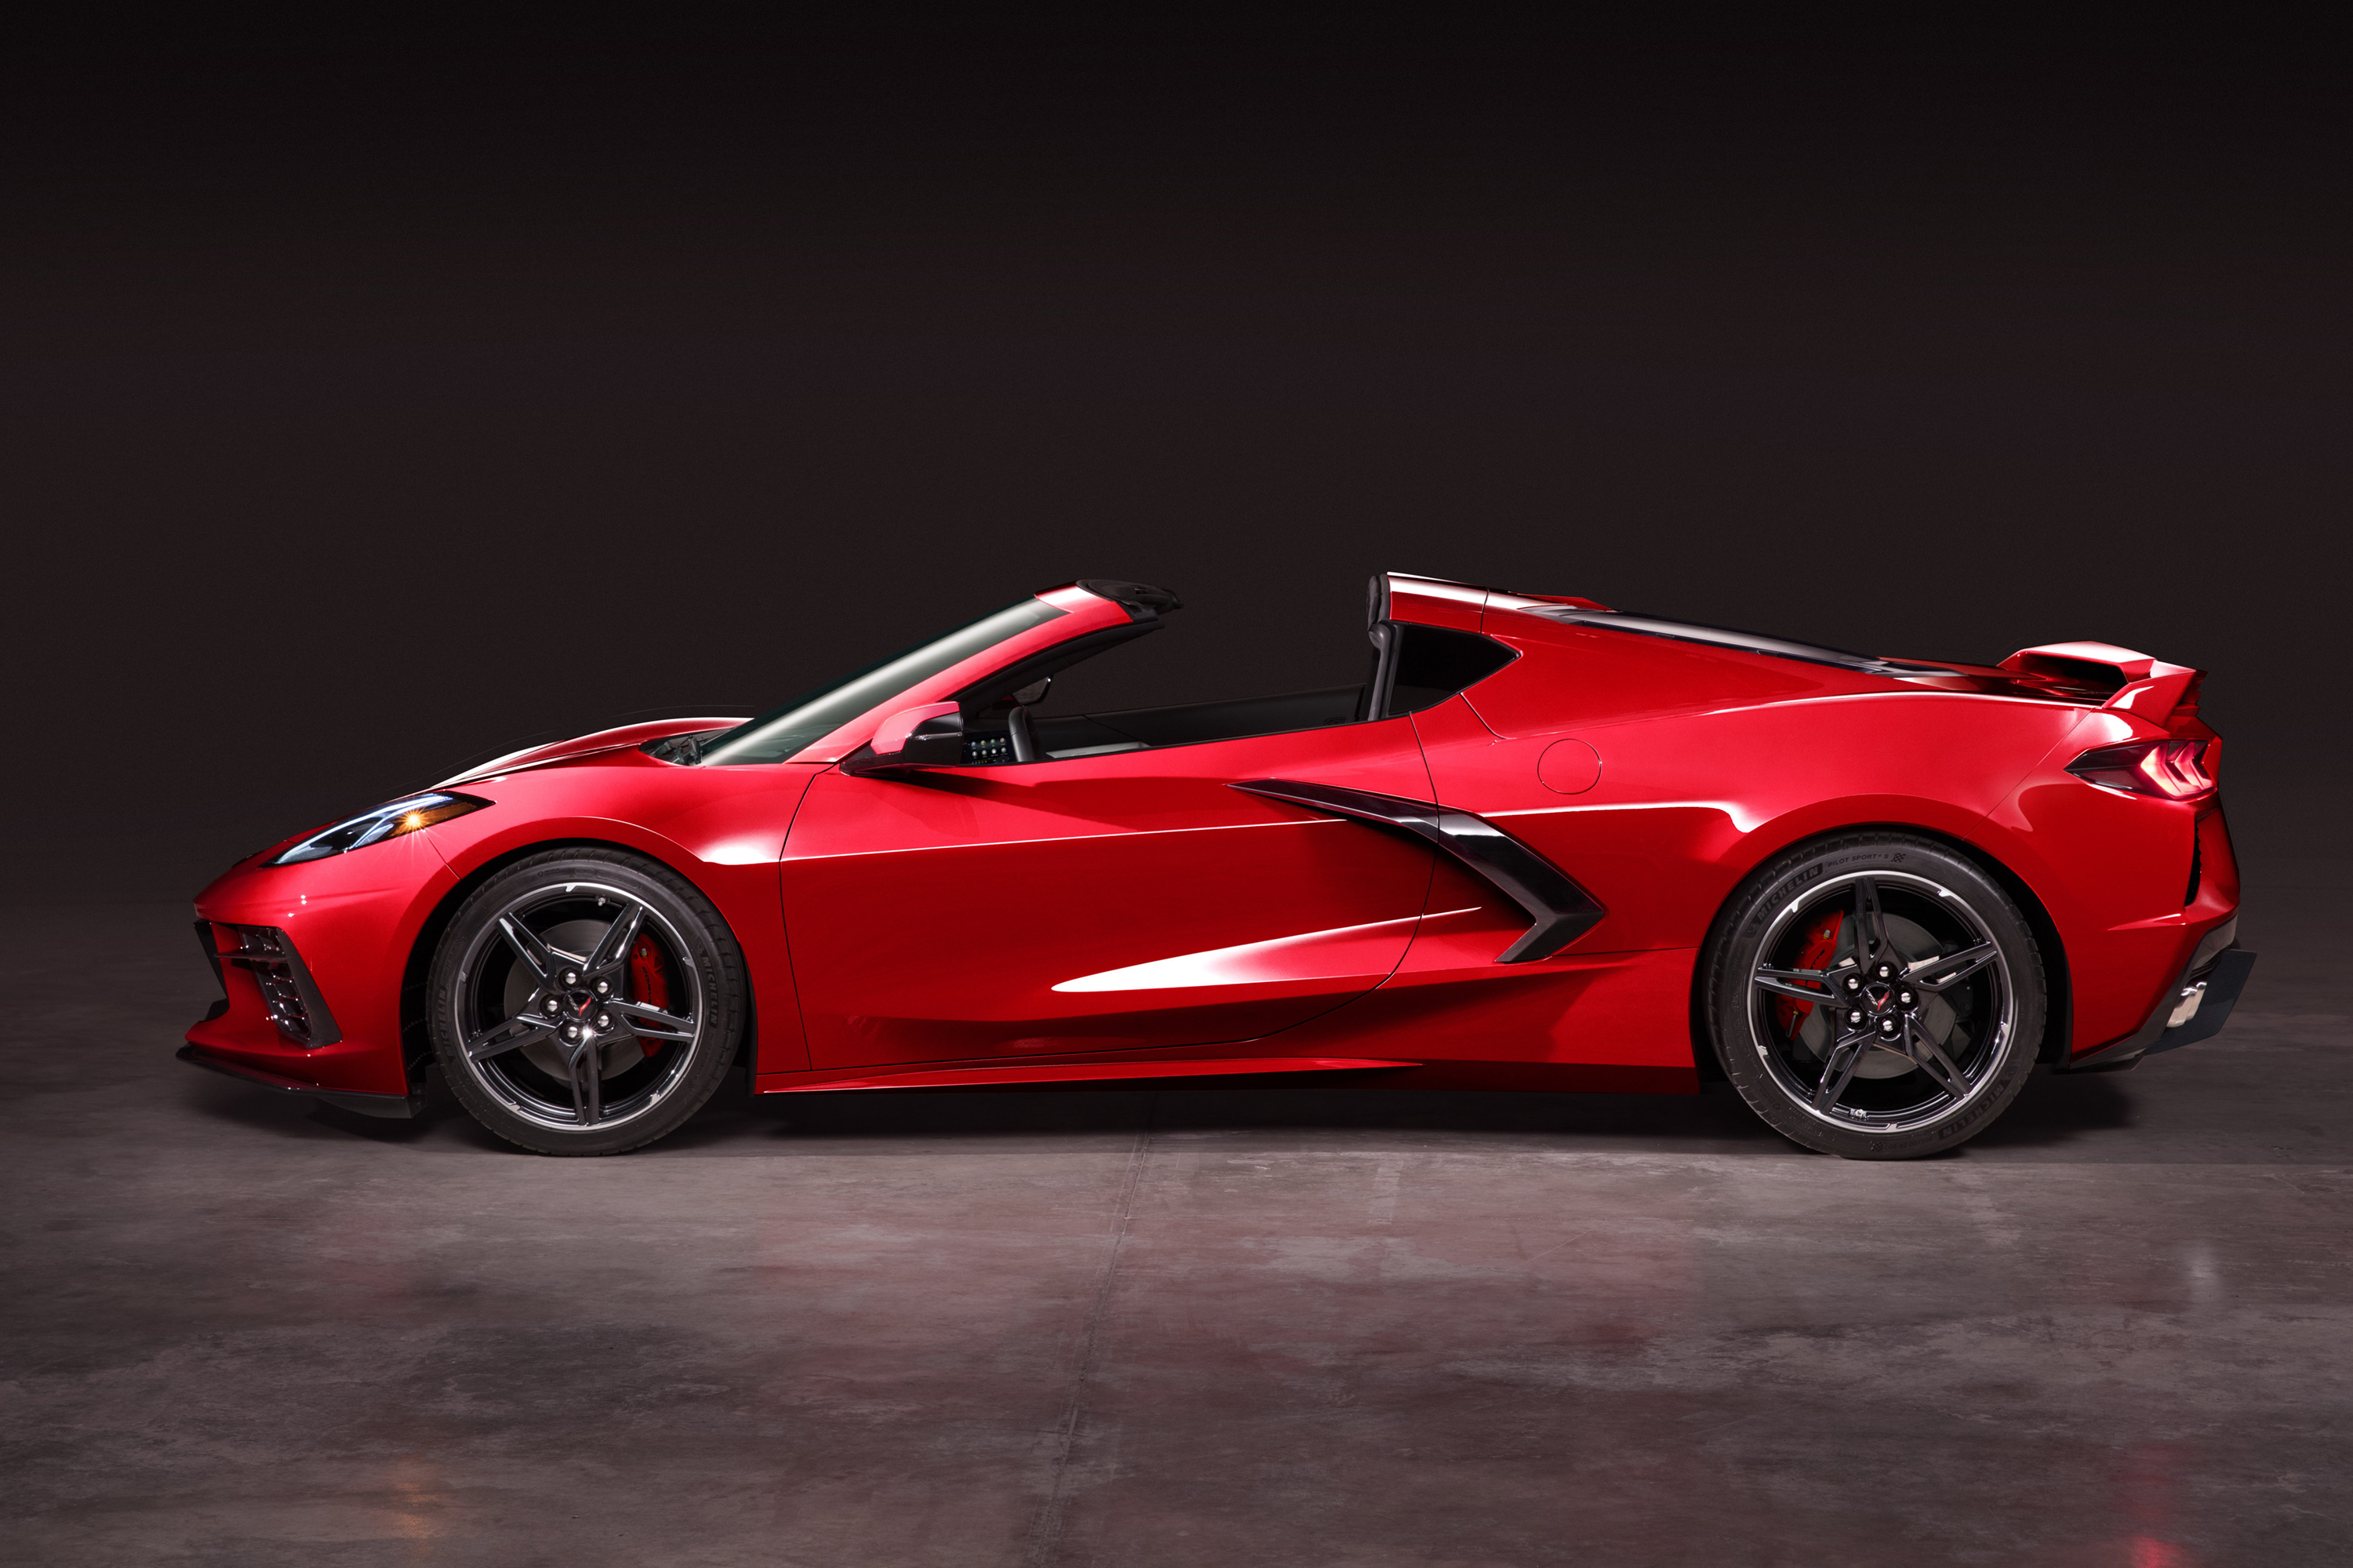 39 The 2020 Corvette Z51 Wallpaper